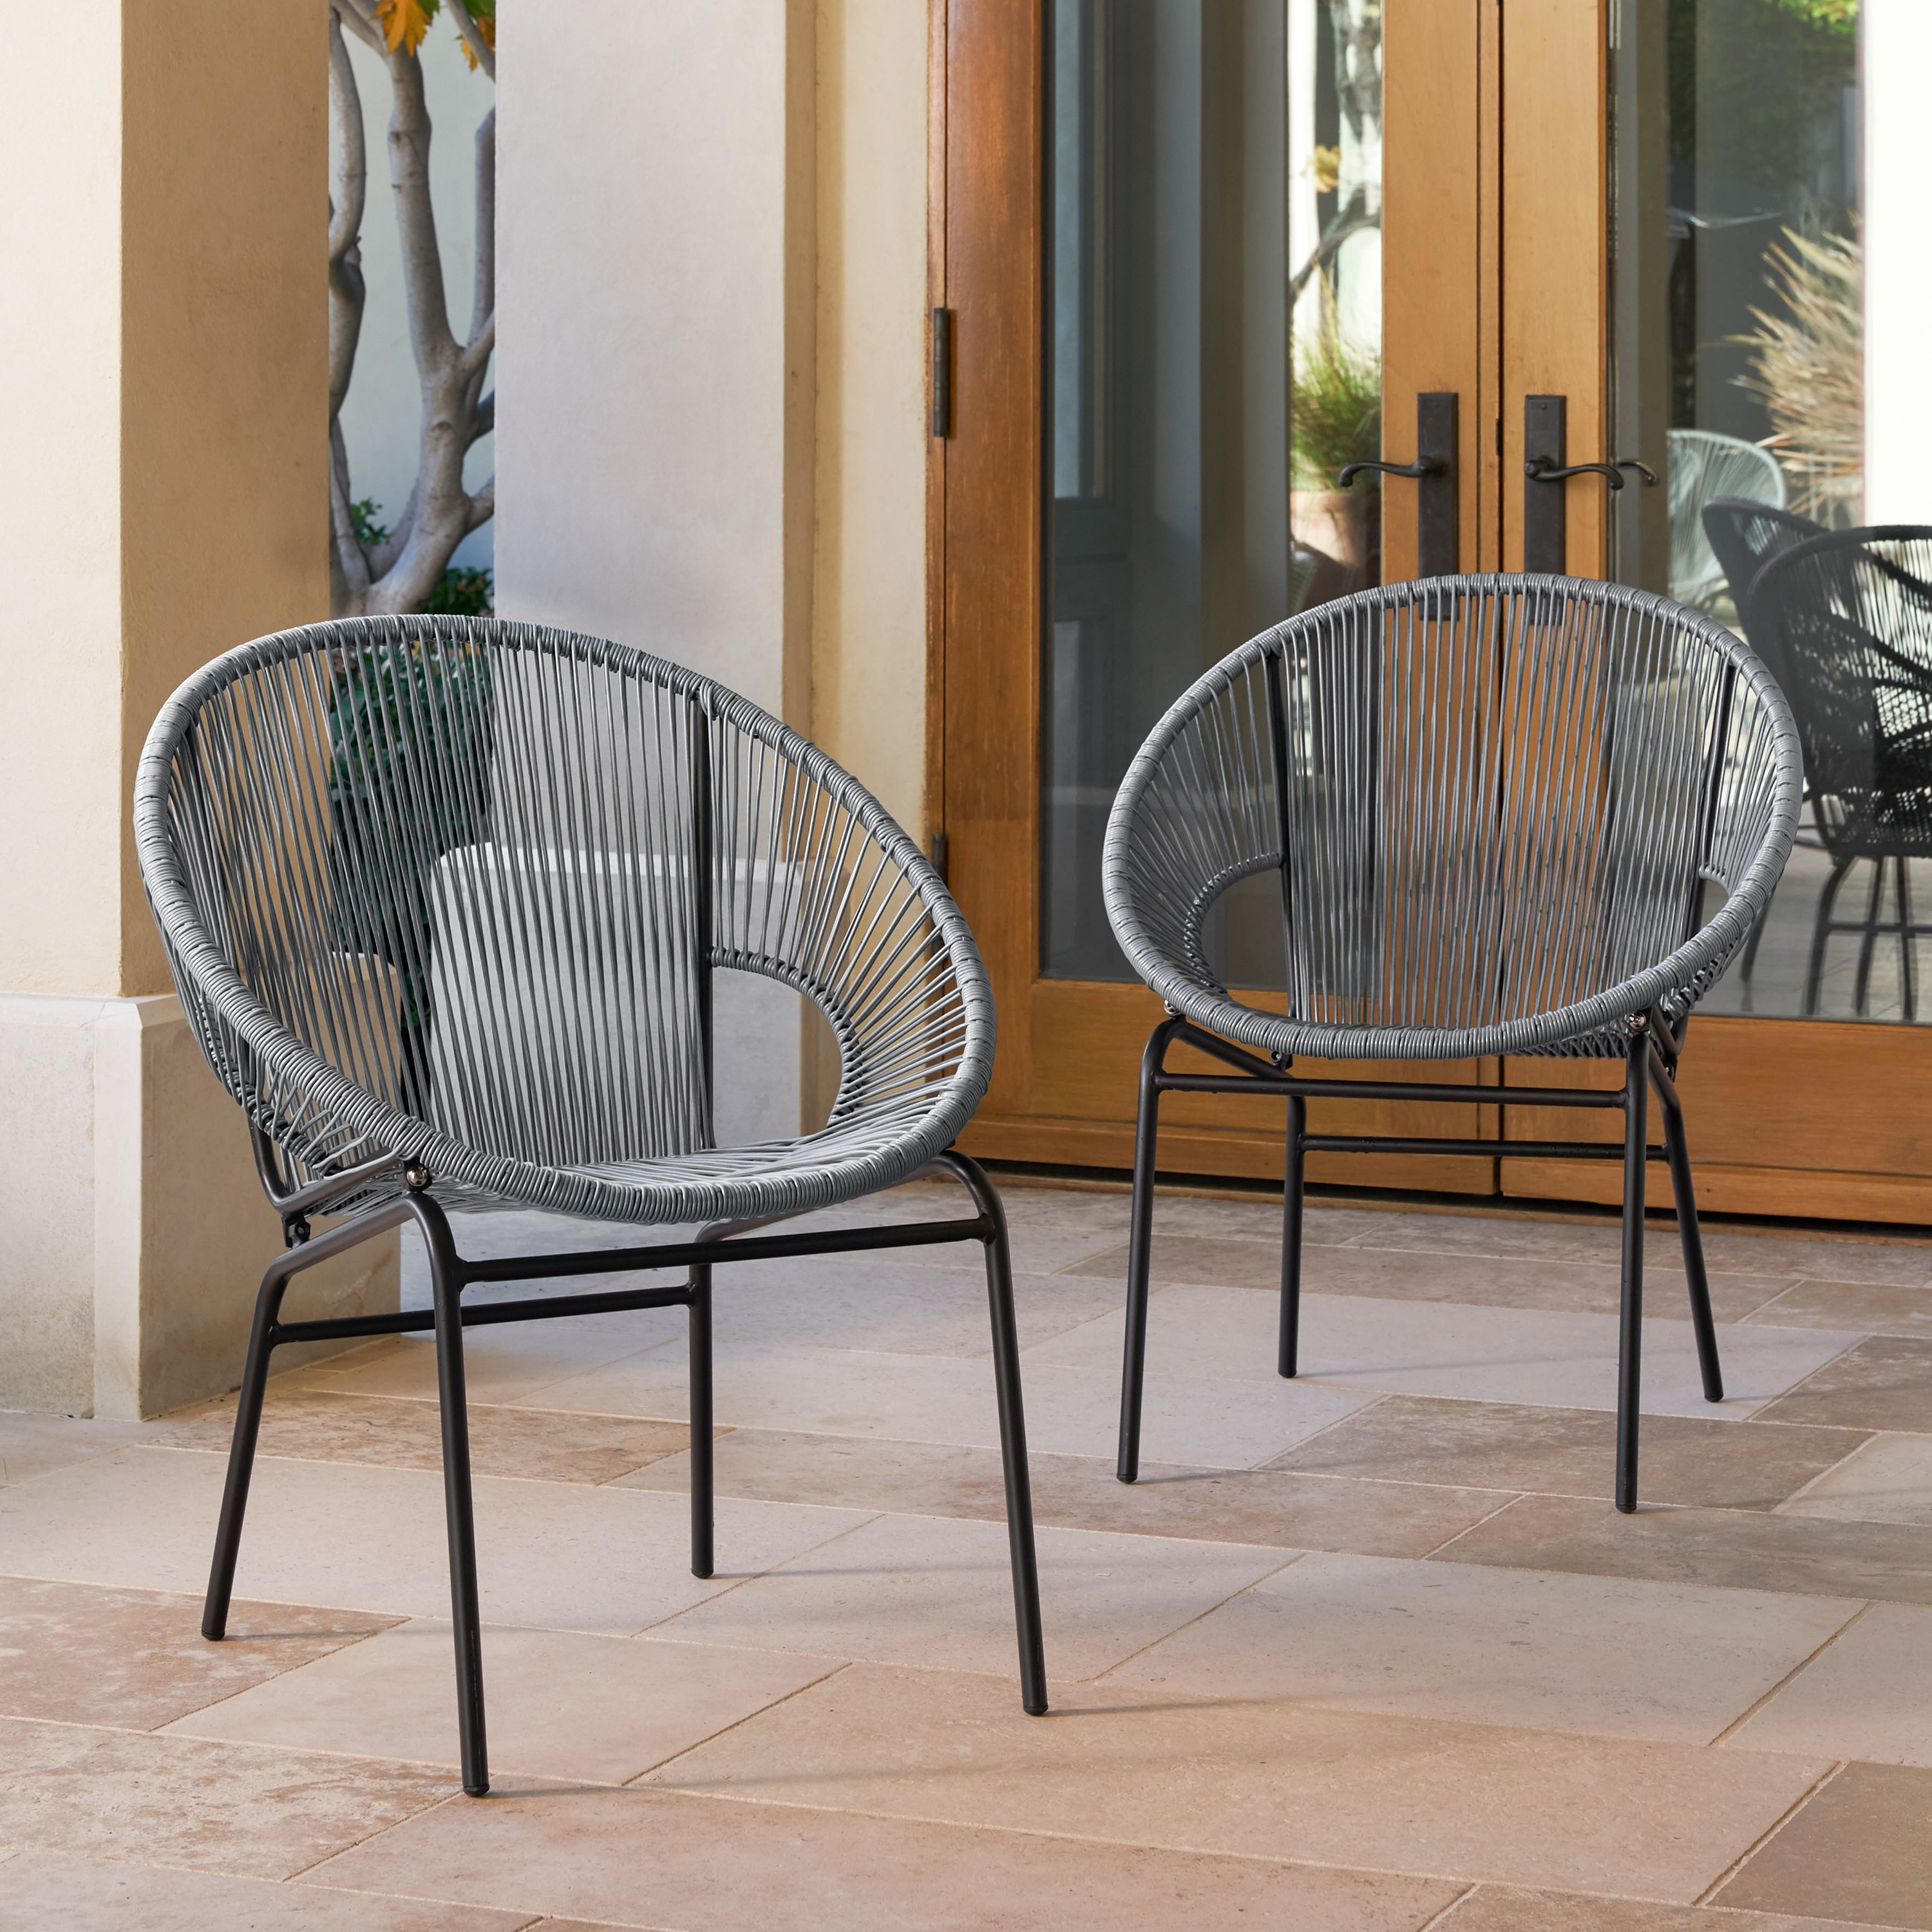 wicker patio chair set of 2 country french side chairs corvus sarcelles woven walmart com